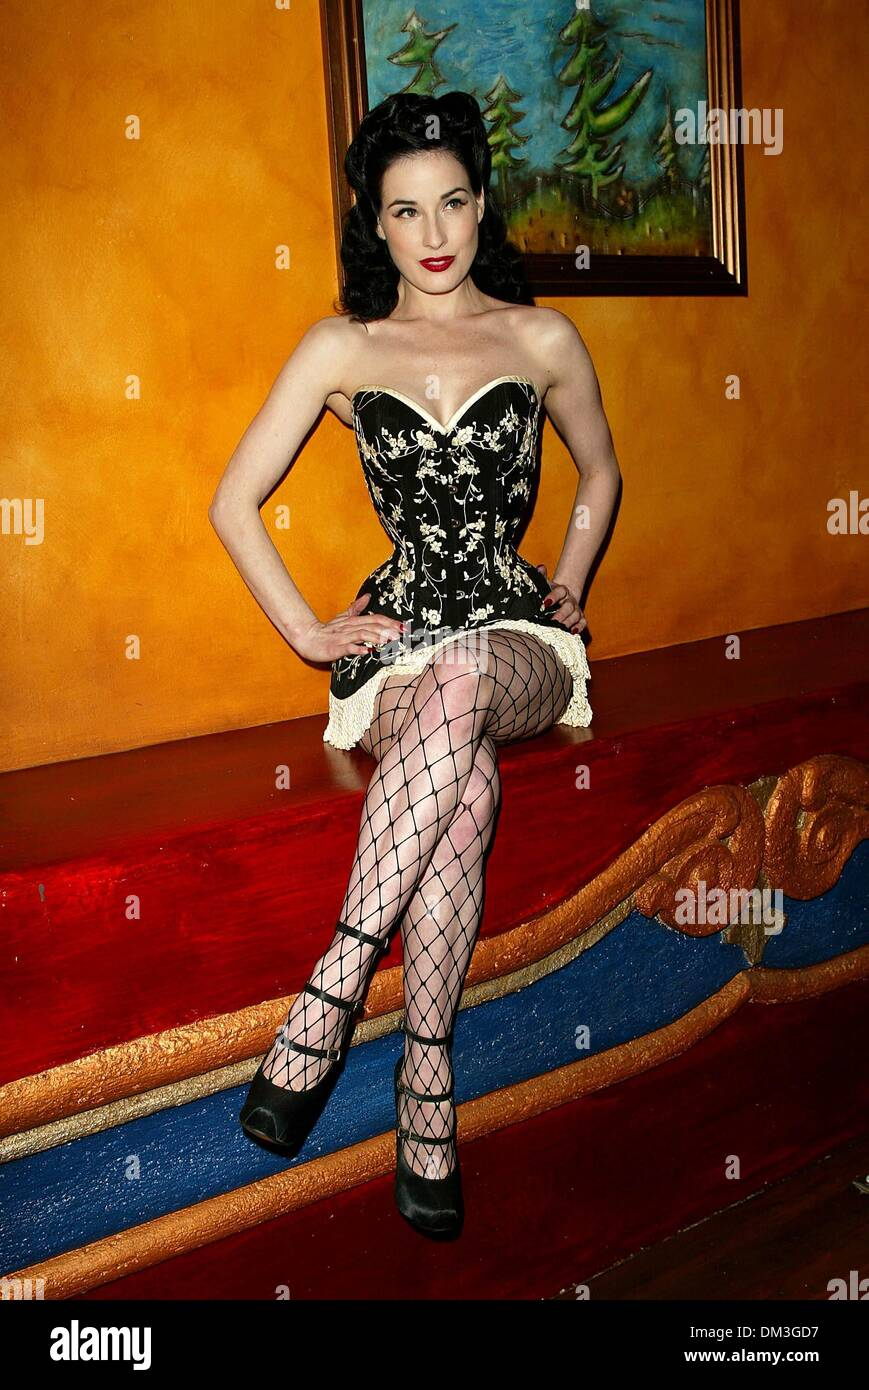 Dita Von Teese! Sexy Burlesque dancer &- the most famous Pin Up of ...